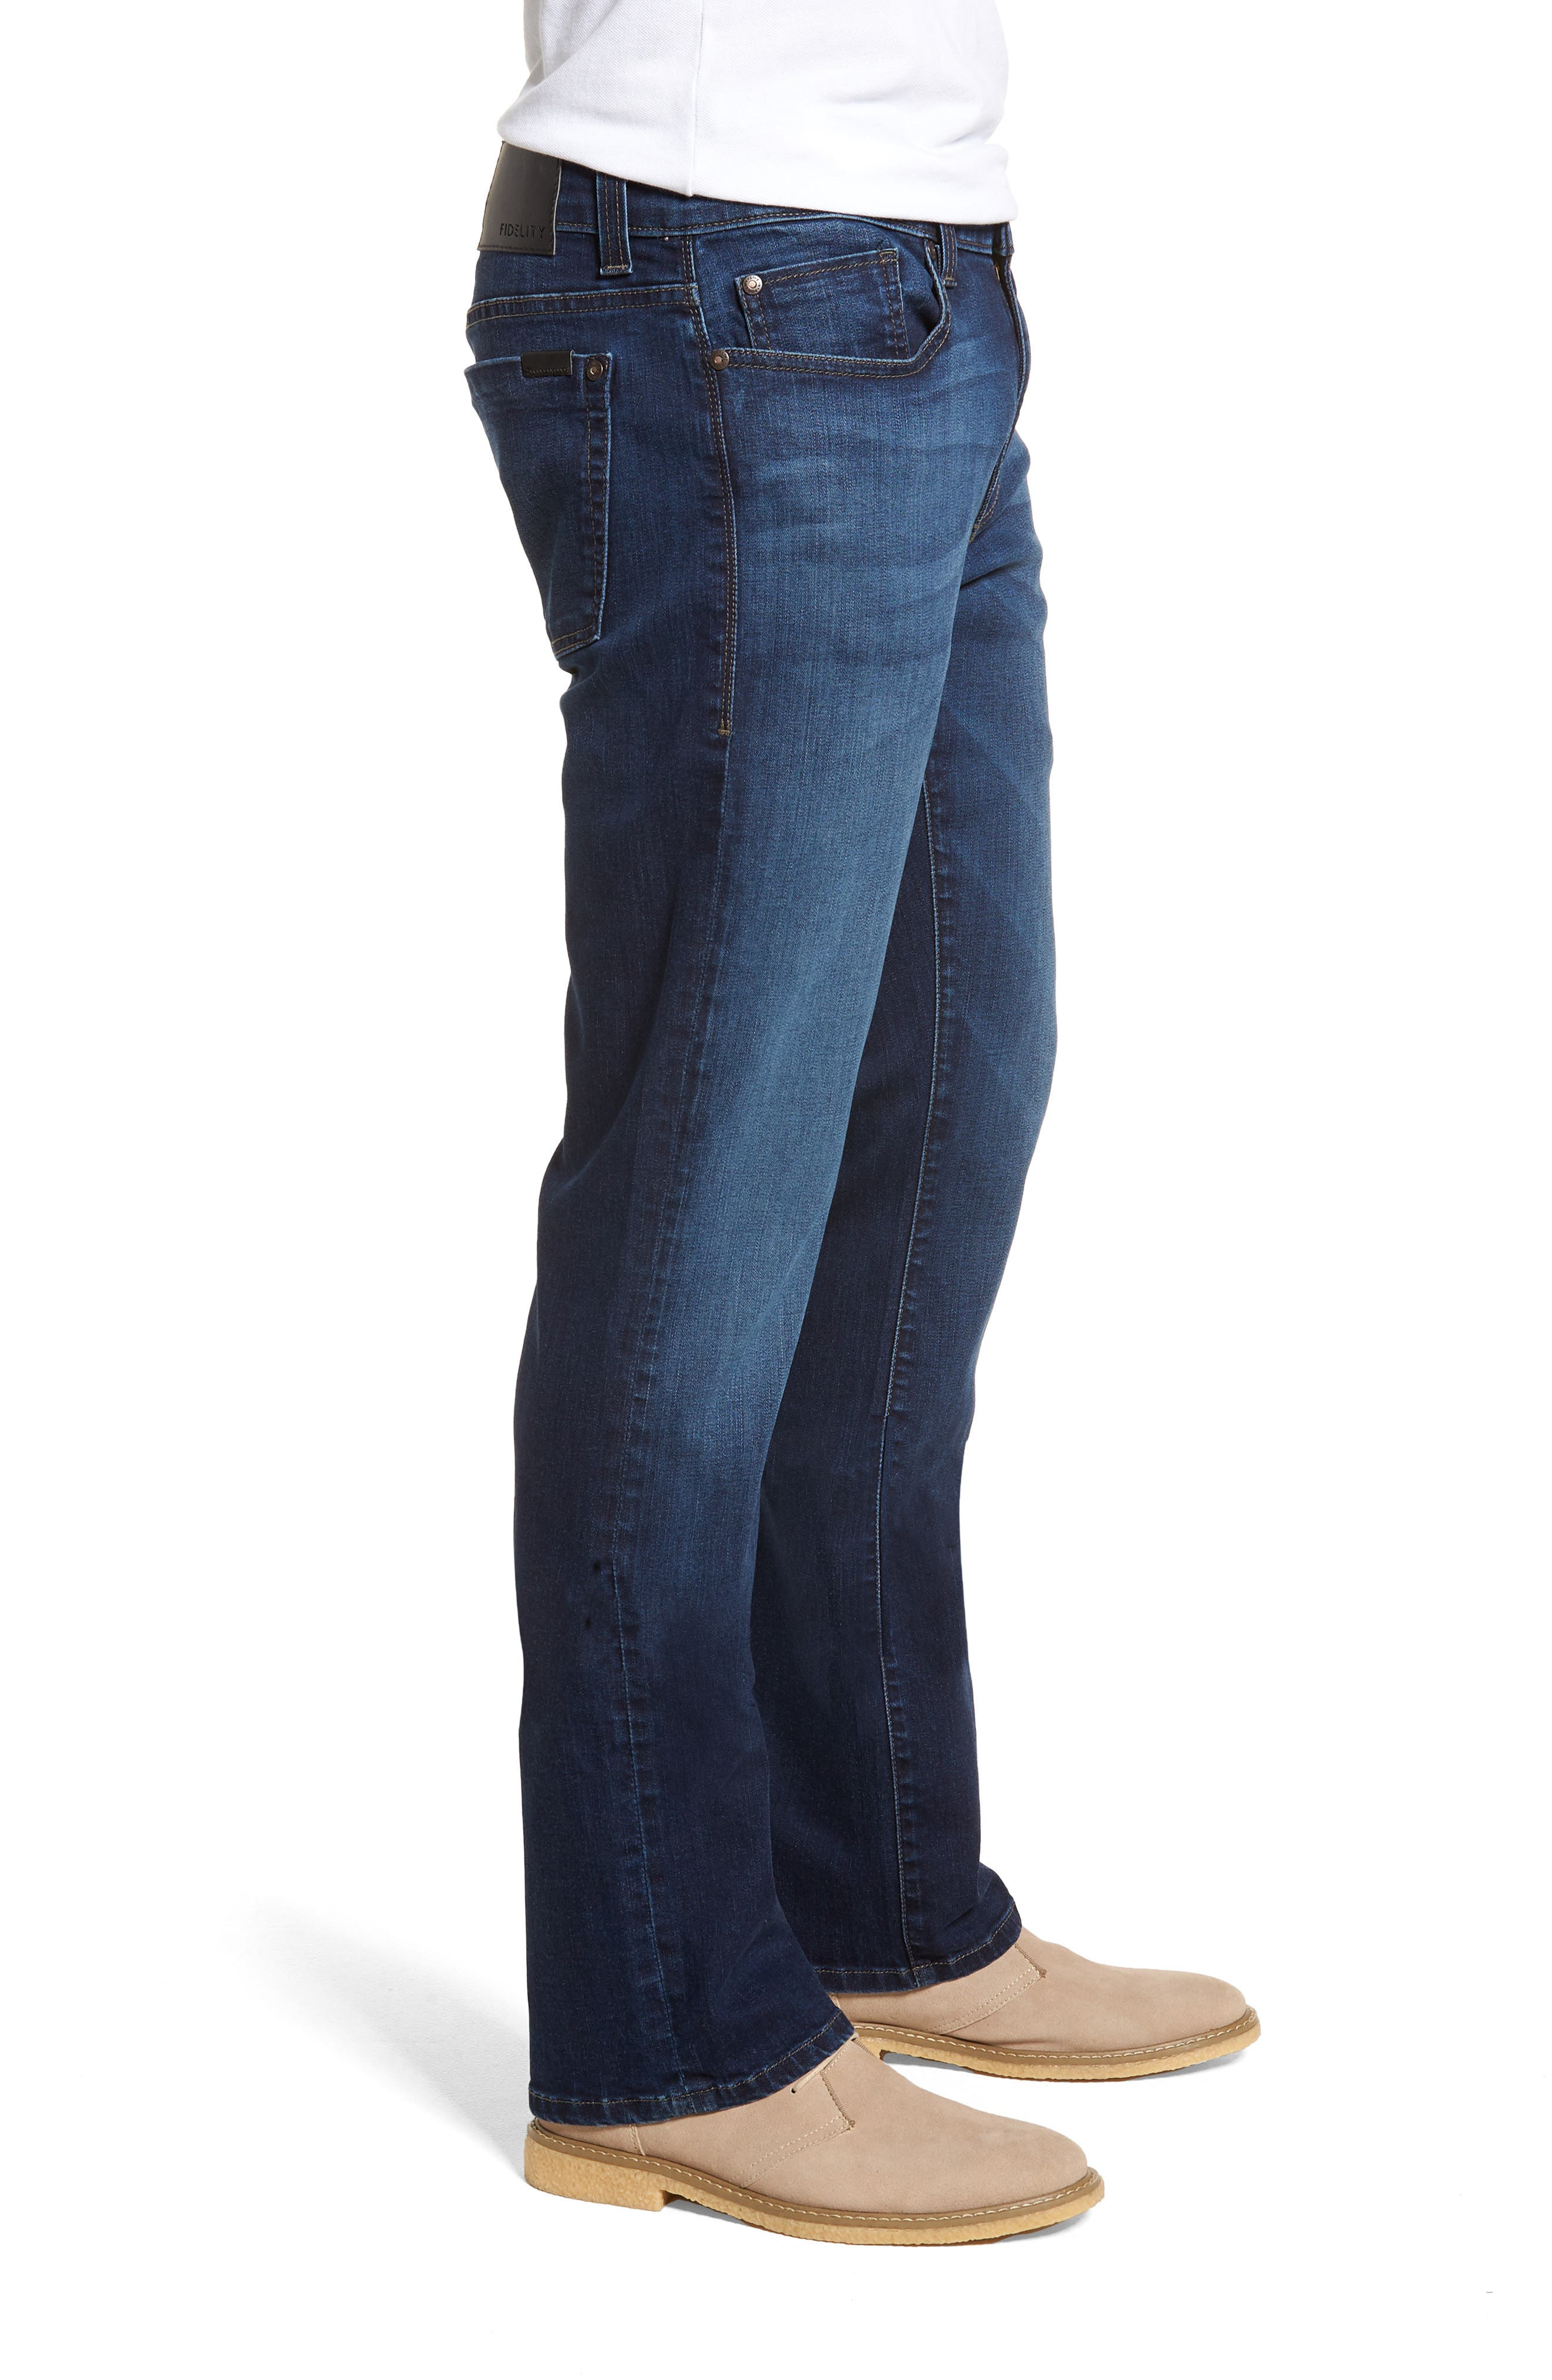 50-11 Relaxed Fit Jeans,                             Alternate thumbnail 3, color,                             CORNELL BLUE